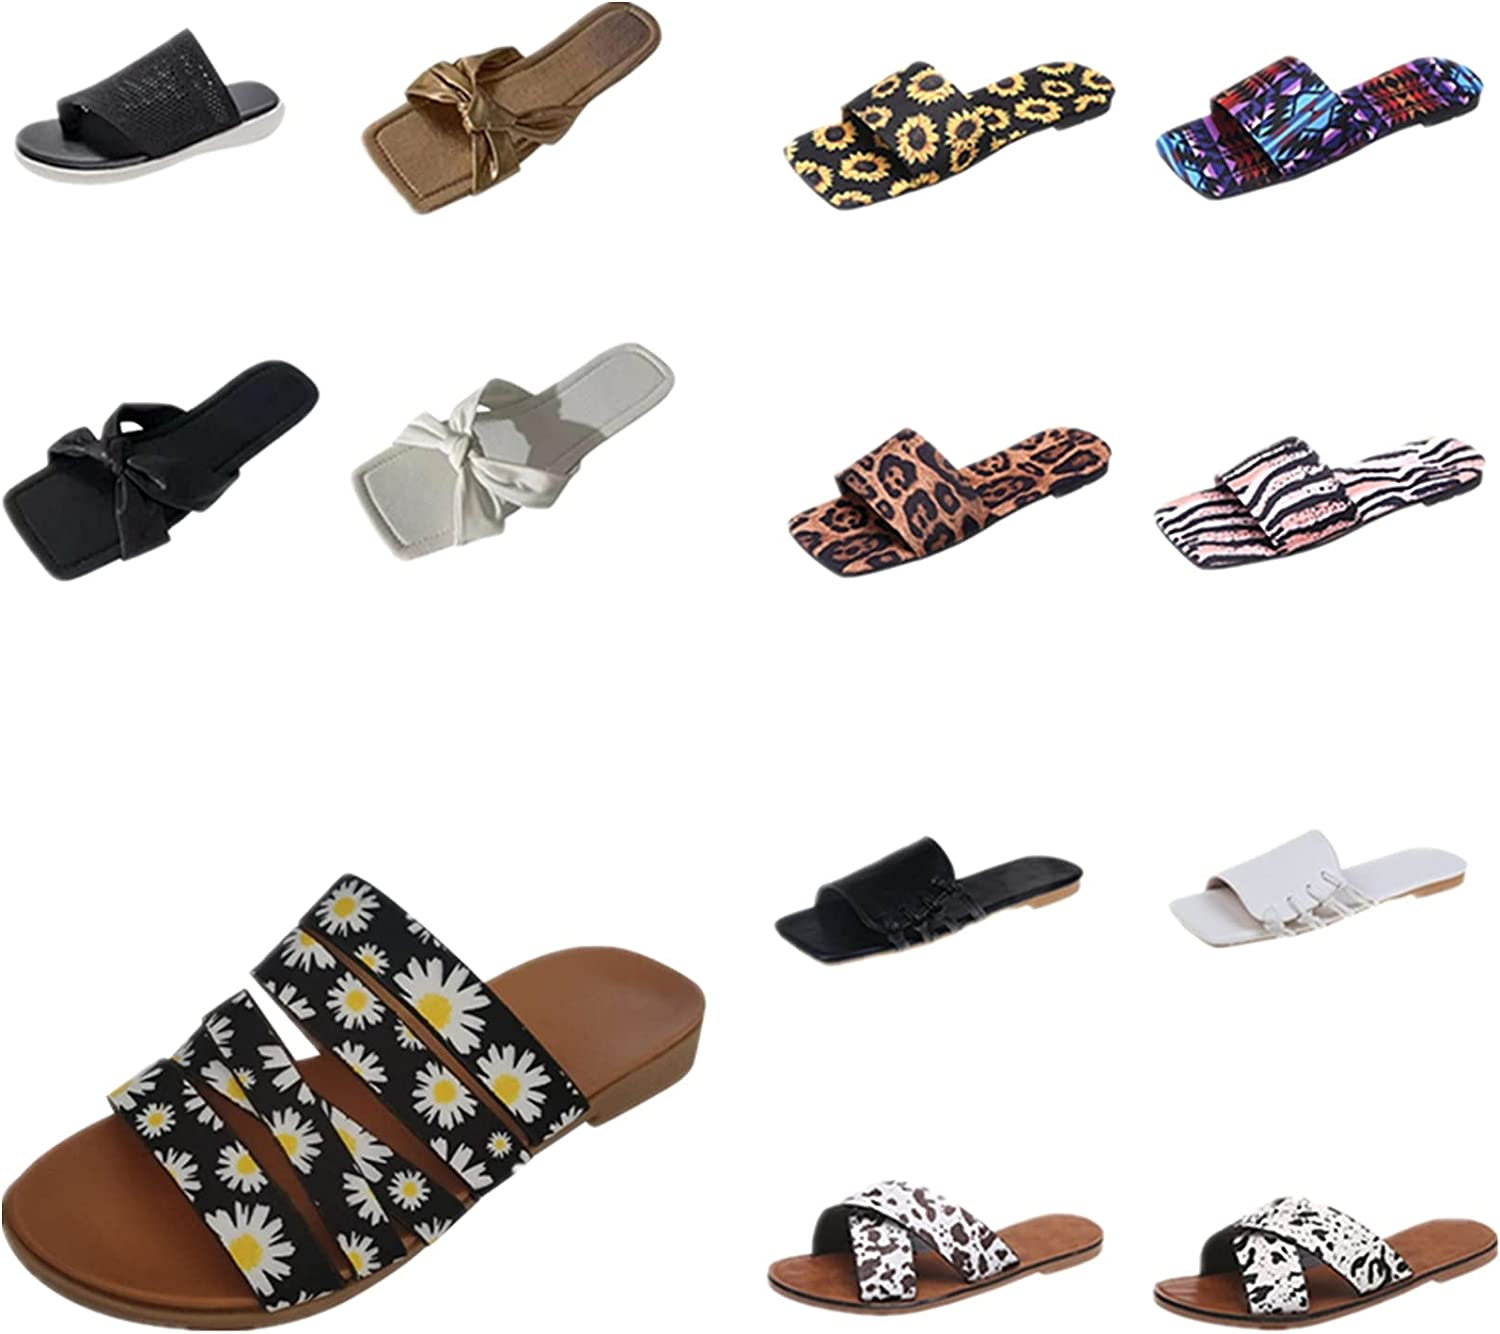 ZiSUGP Summer Thick Heel Fashion Casual Go Out Flip Flop Women's Slippers